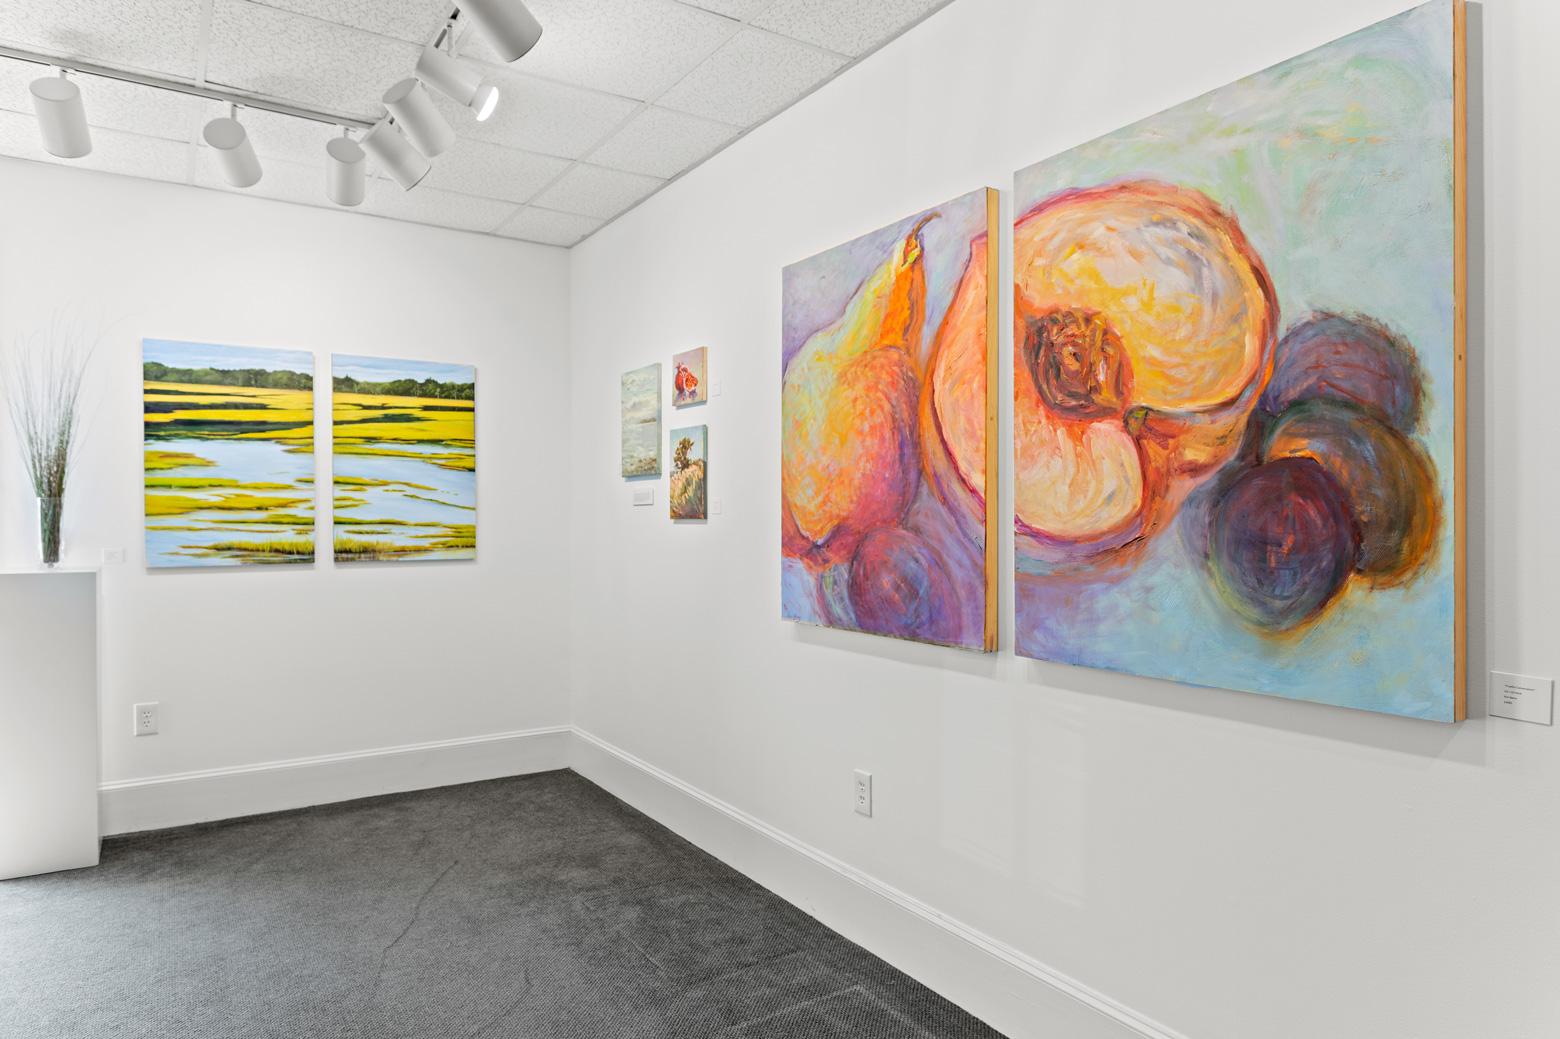 hanging art in the River Shops show room